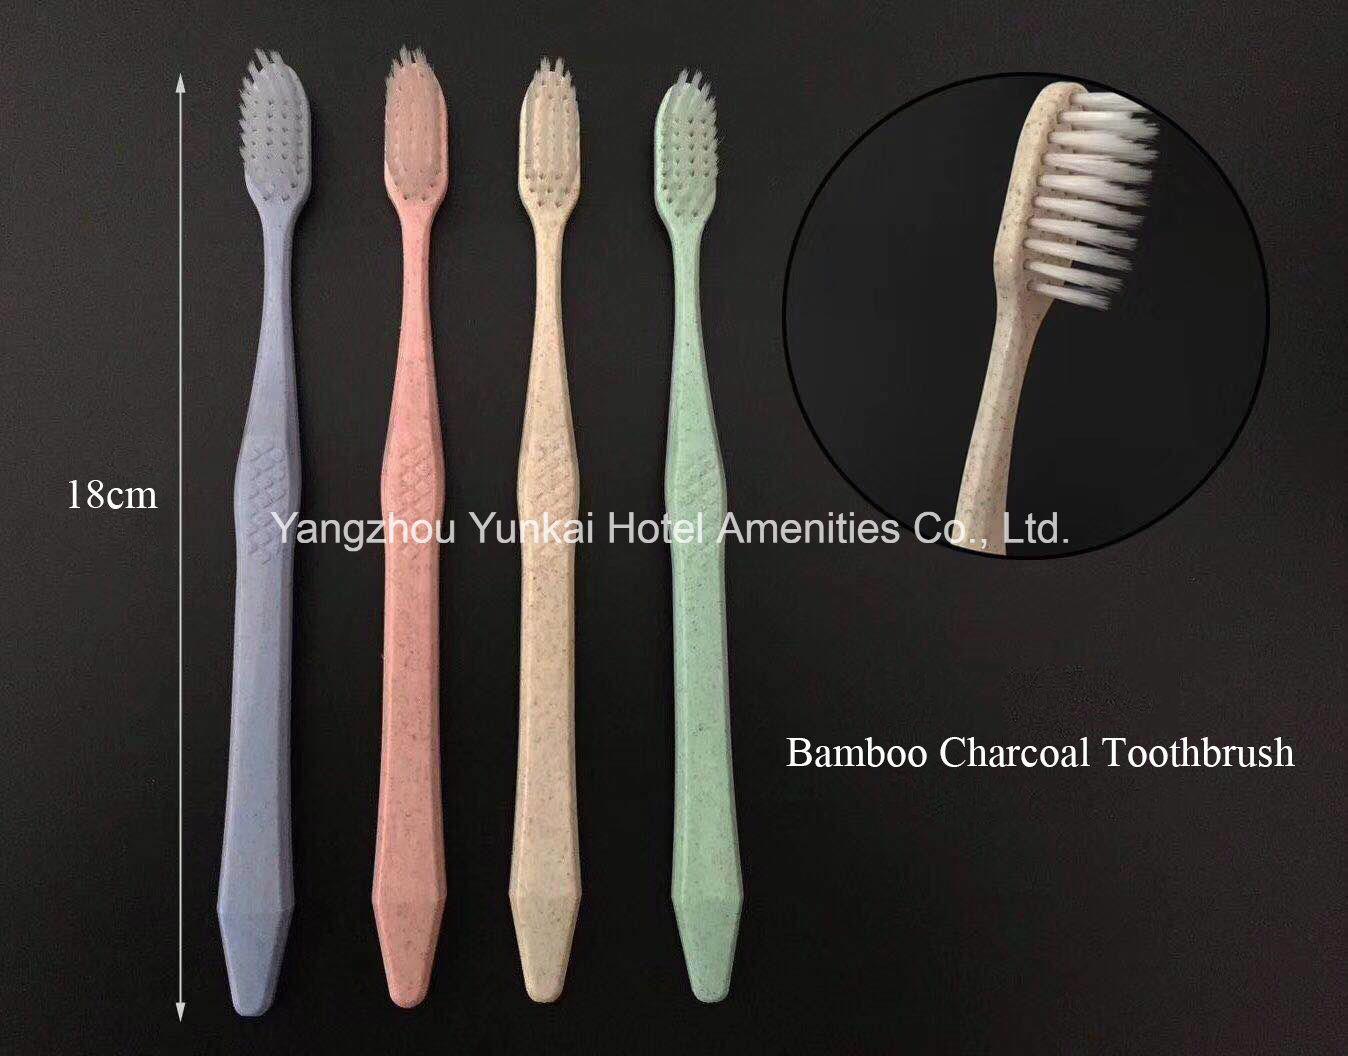 Bamboo Canada China Ramada Hotel Brush With Bamboo Toothbrush To Canada China